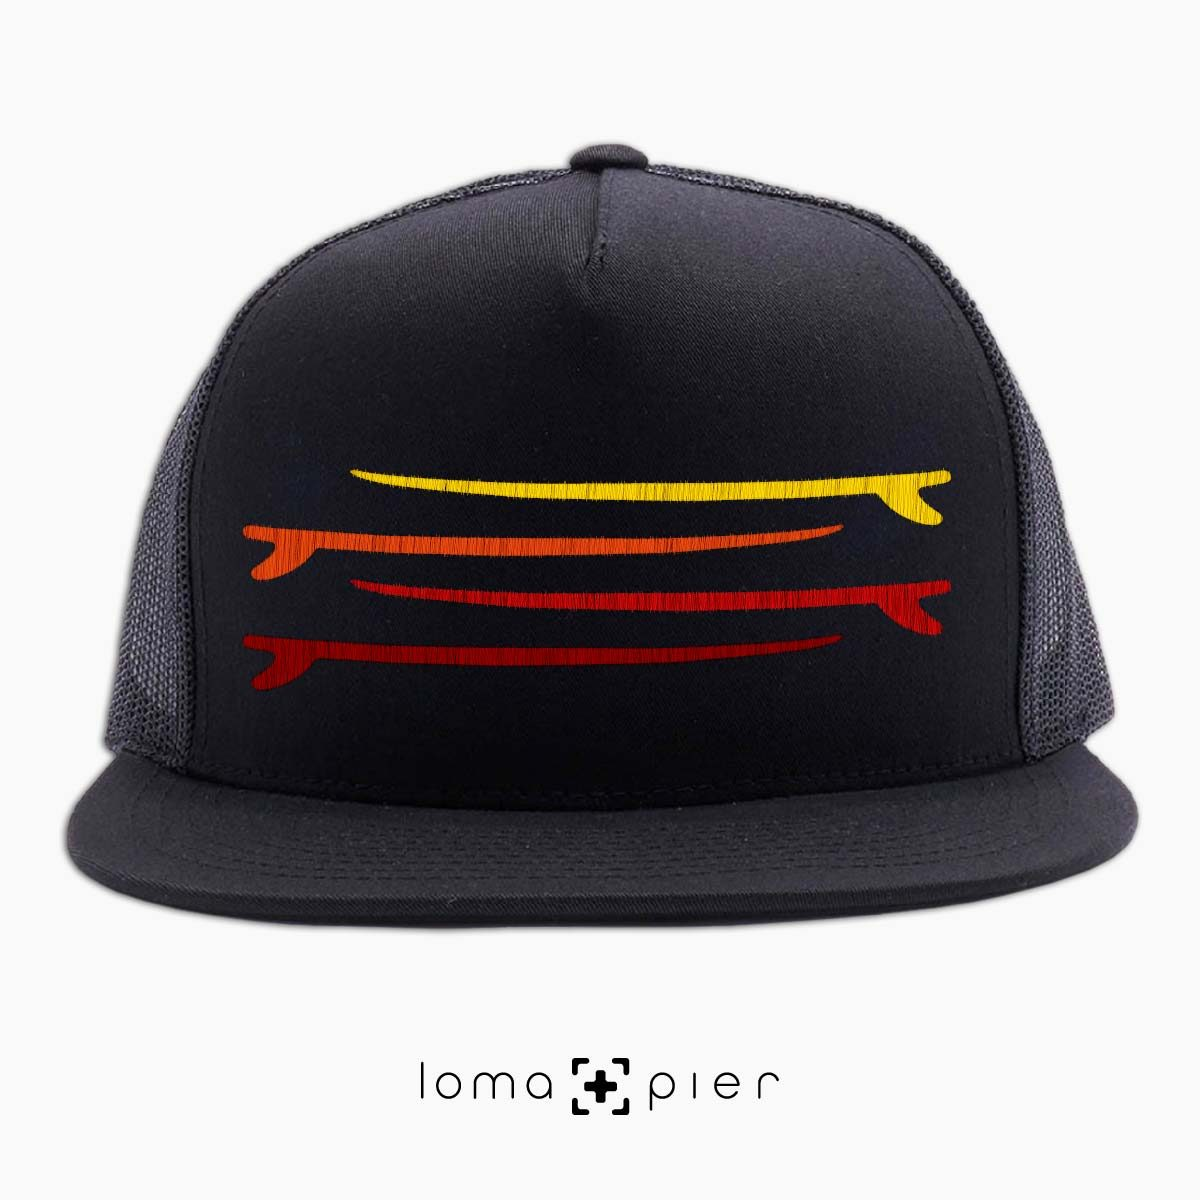 SURF STACK manhattan beach netback trucker hat in black by loma+pier hat store